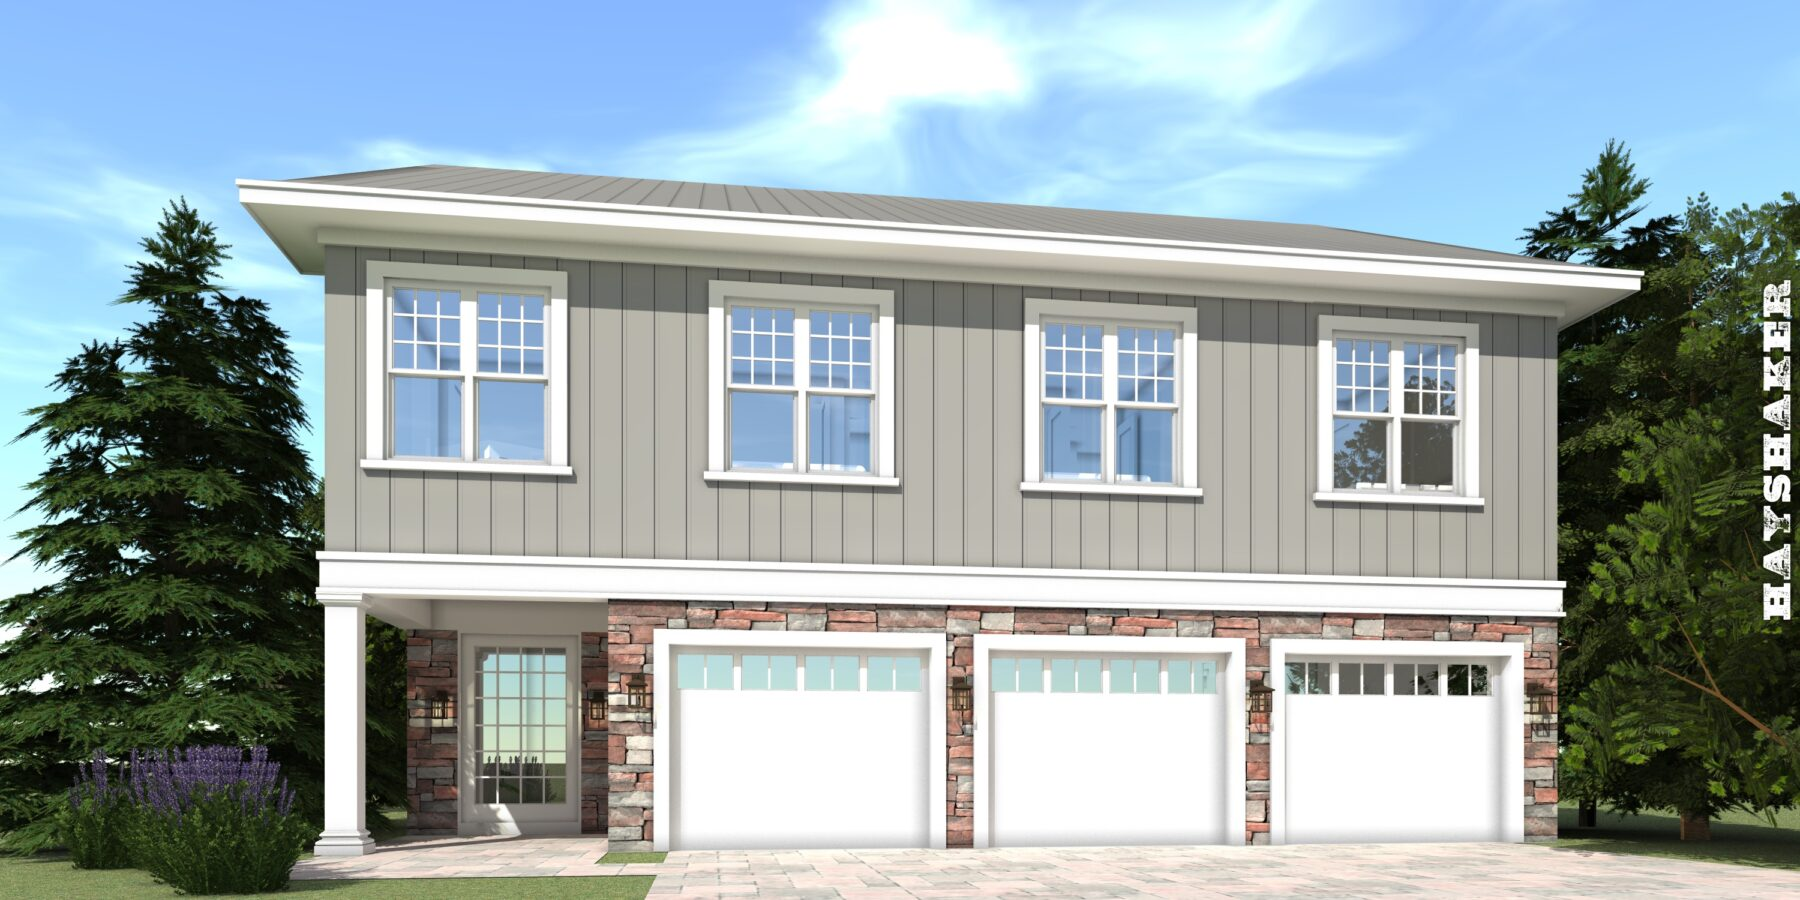 5 Bedroom House For A Small Lot 3 Car Garage Tyree House